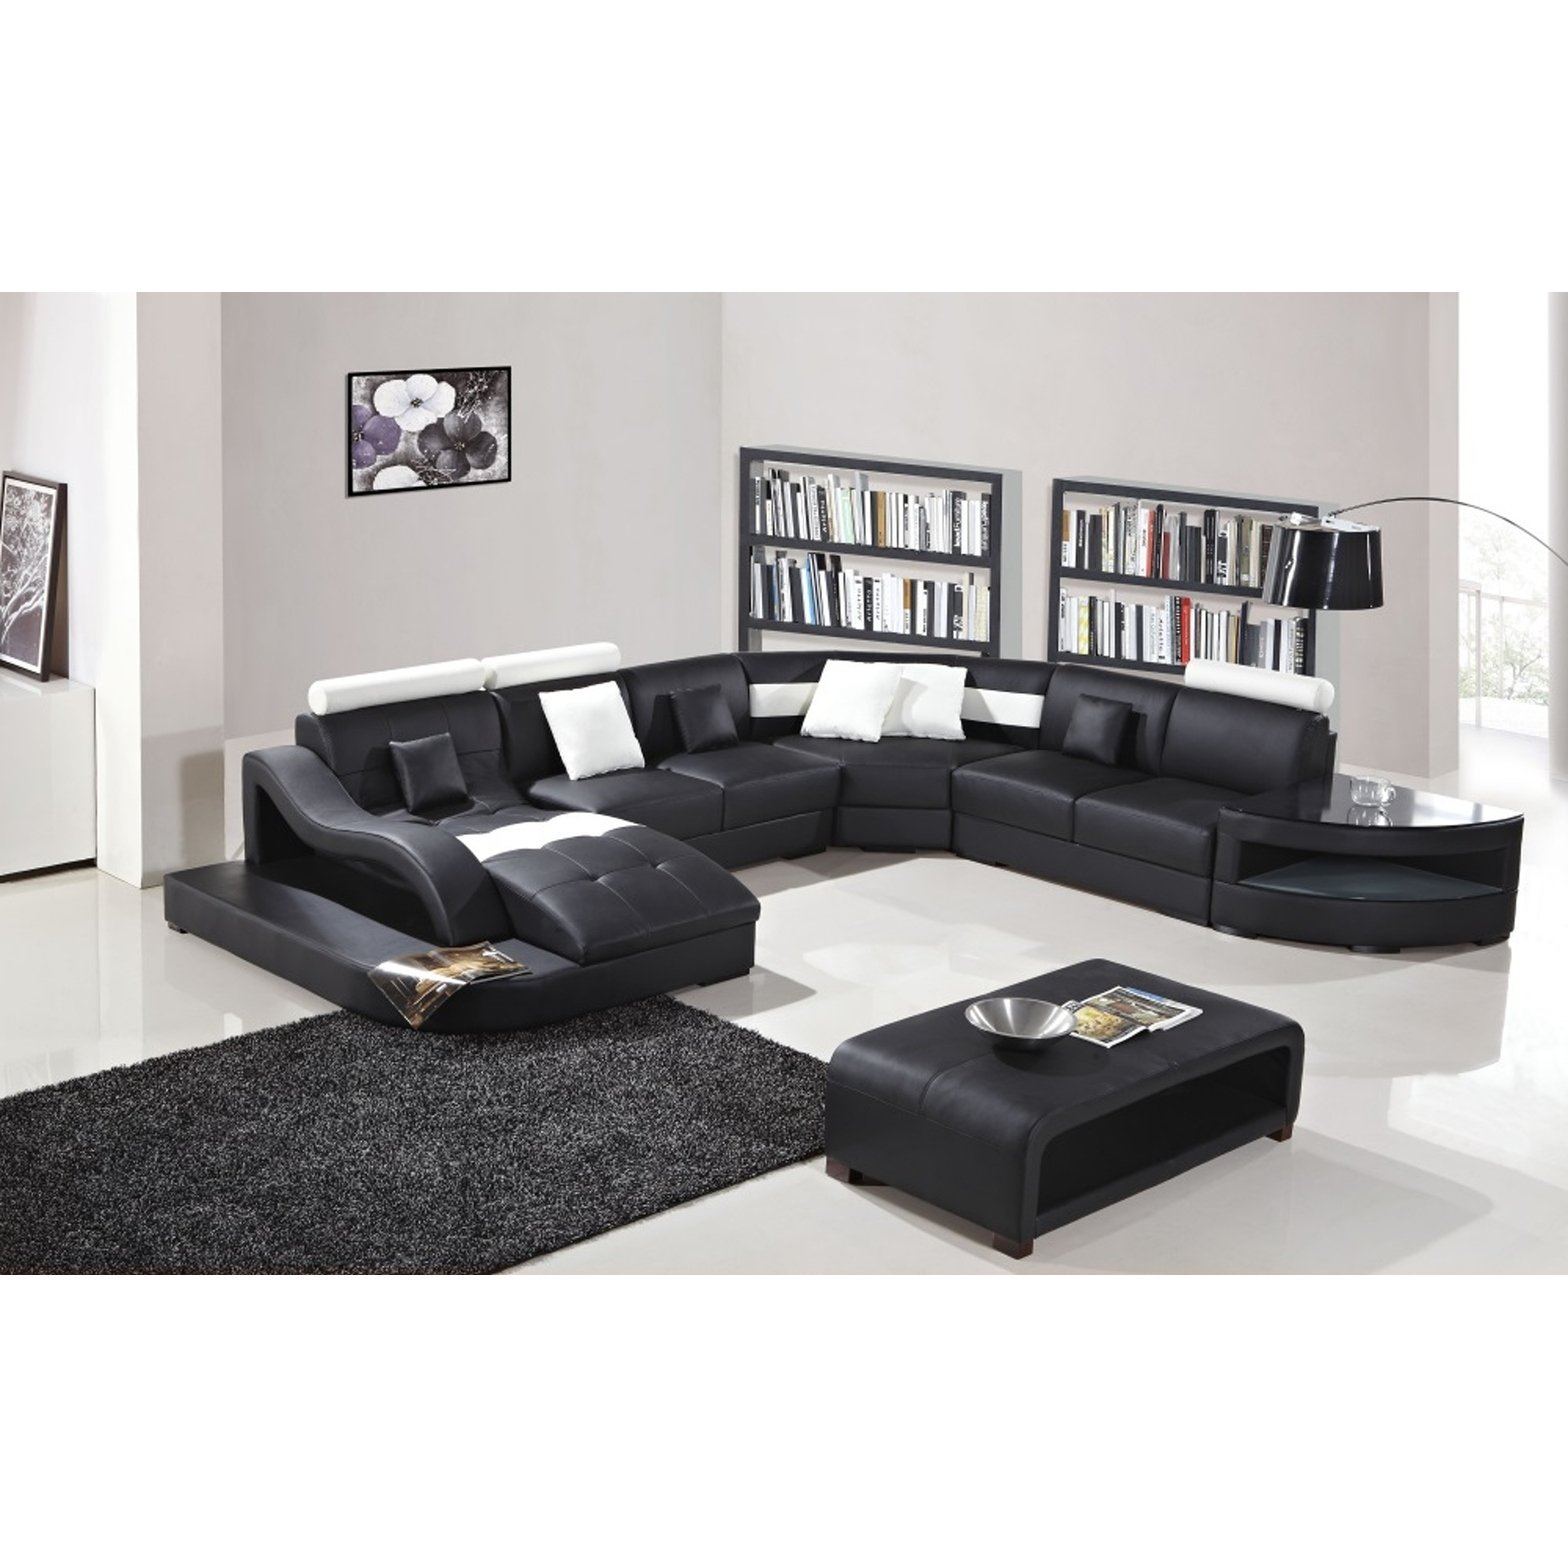 Shop Black And White Modern Contemporary Real Leather Sectional pertaining to 15 Clever Ideas How to Build White And Black Living Room Set